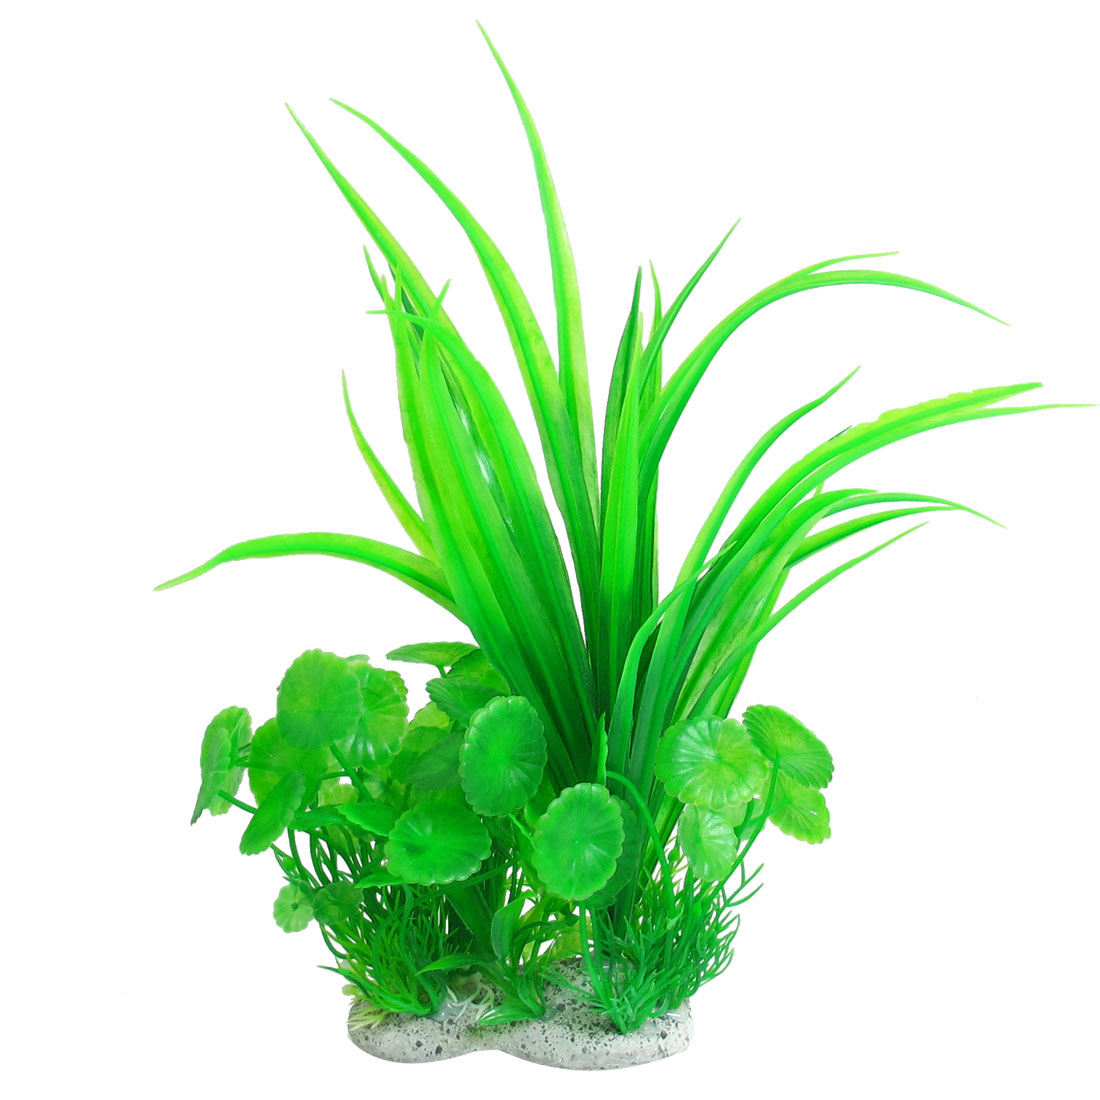 "Aquarium Green Manmade Water Grass Plants Decoration 10.2"" Height"